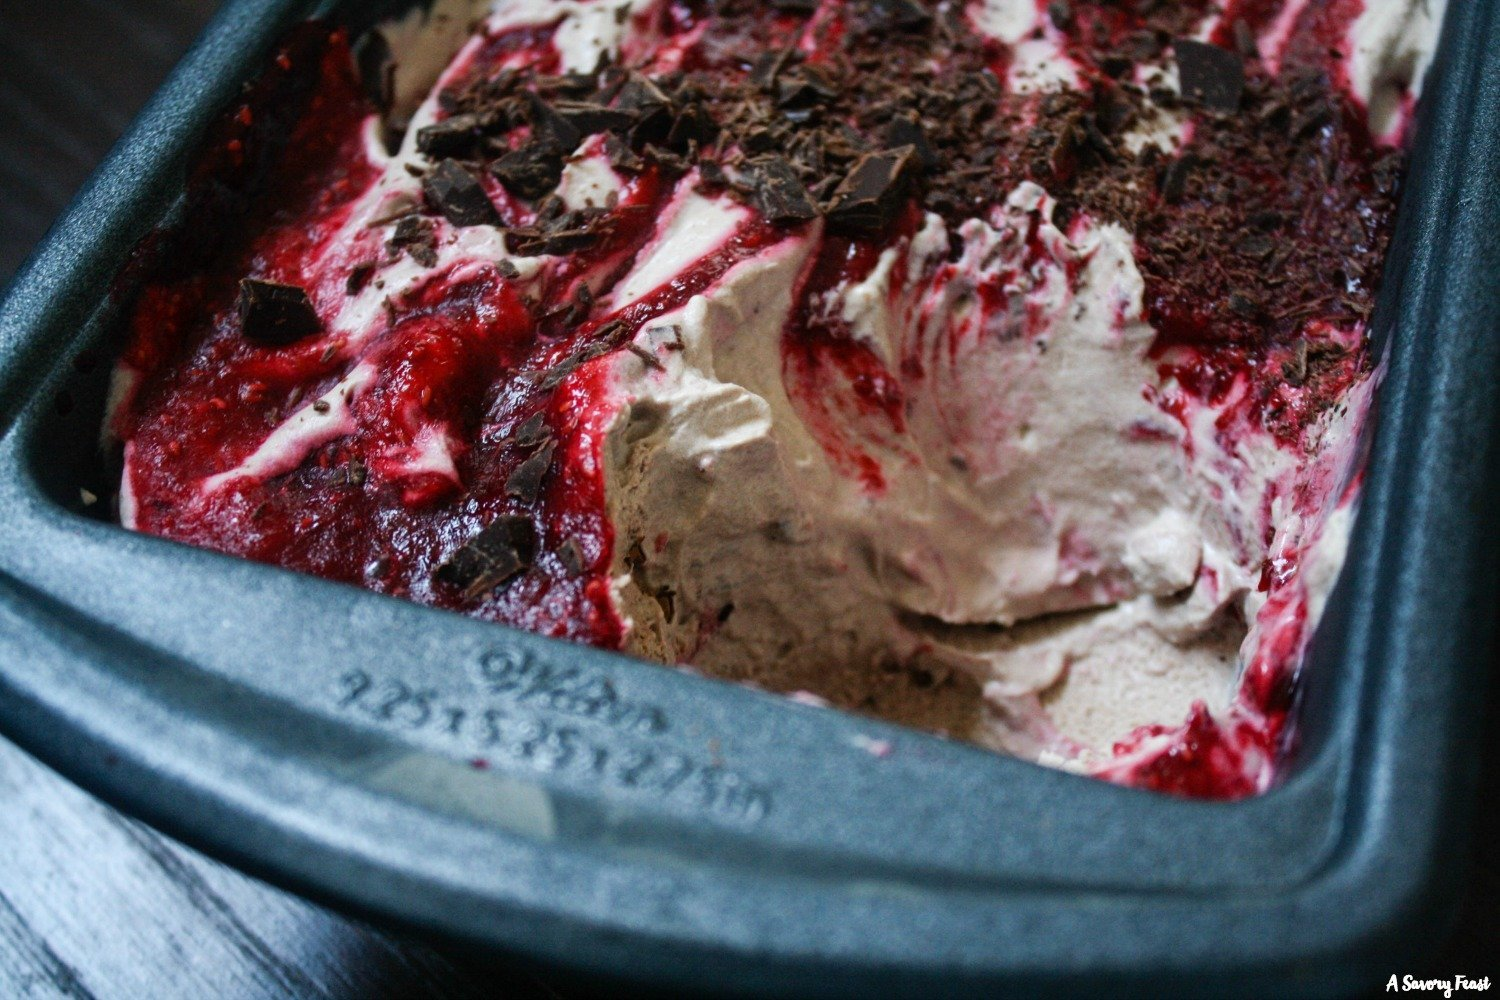 The perfect dessert for Mother's Day! Raspberry Swirl Chocolate No Churn Ice Cream